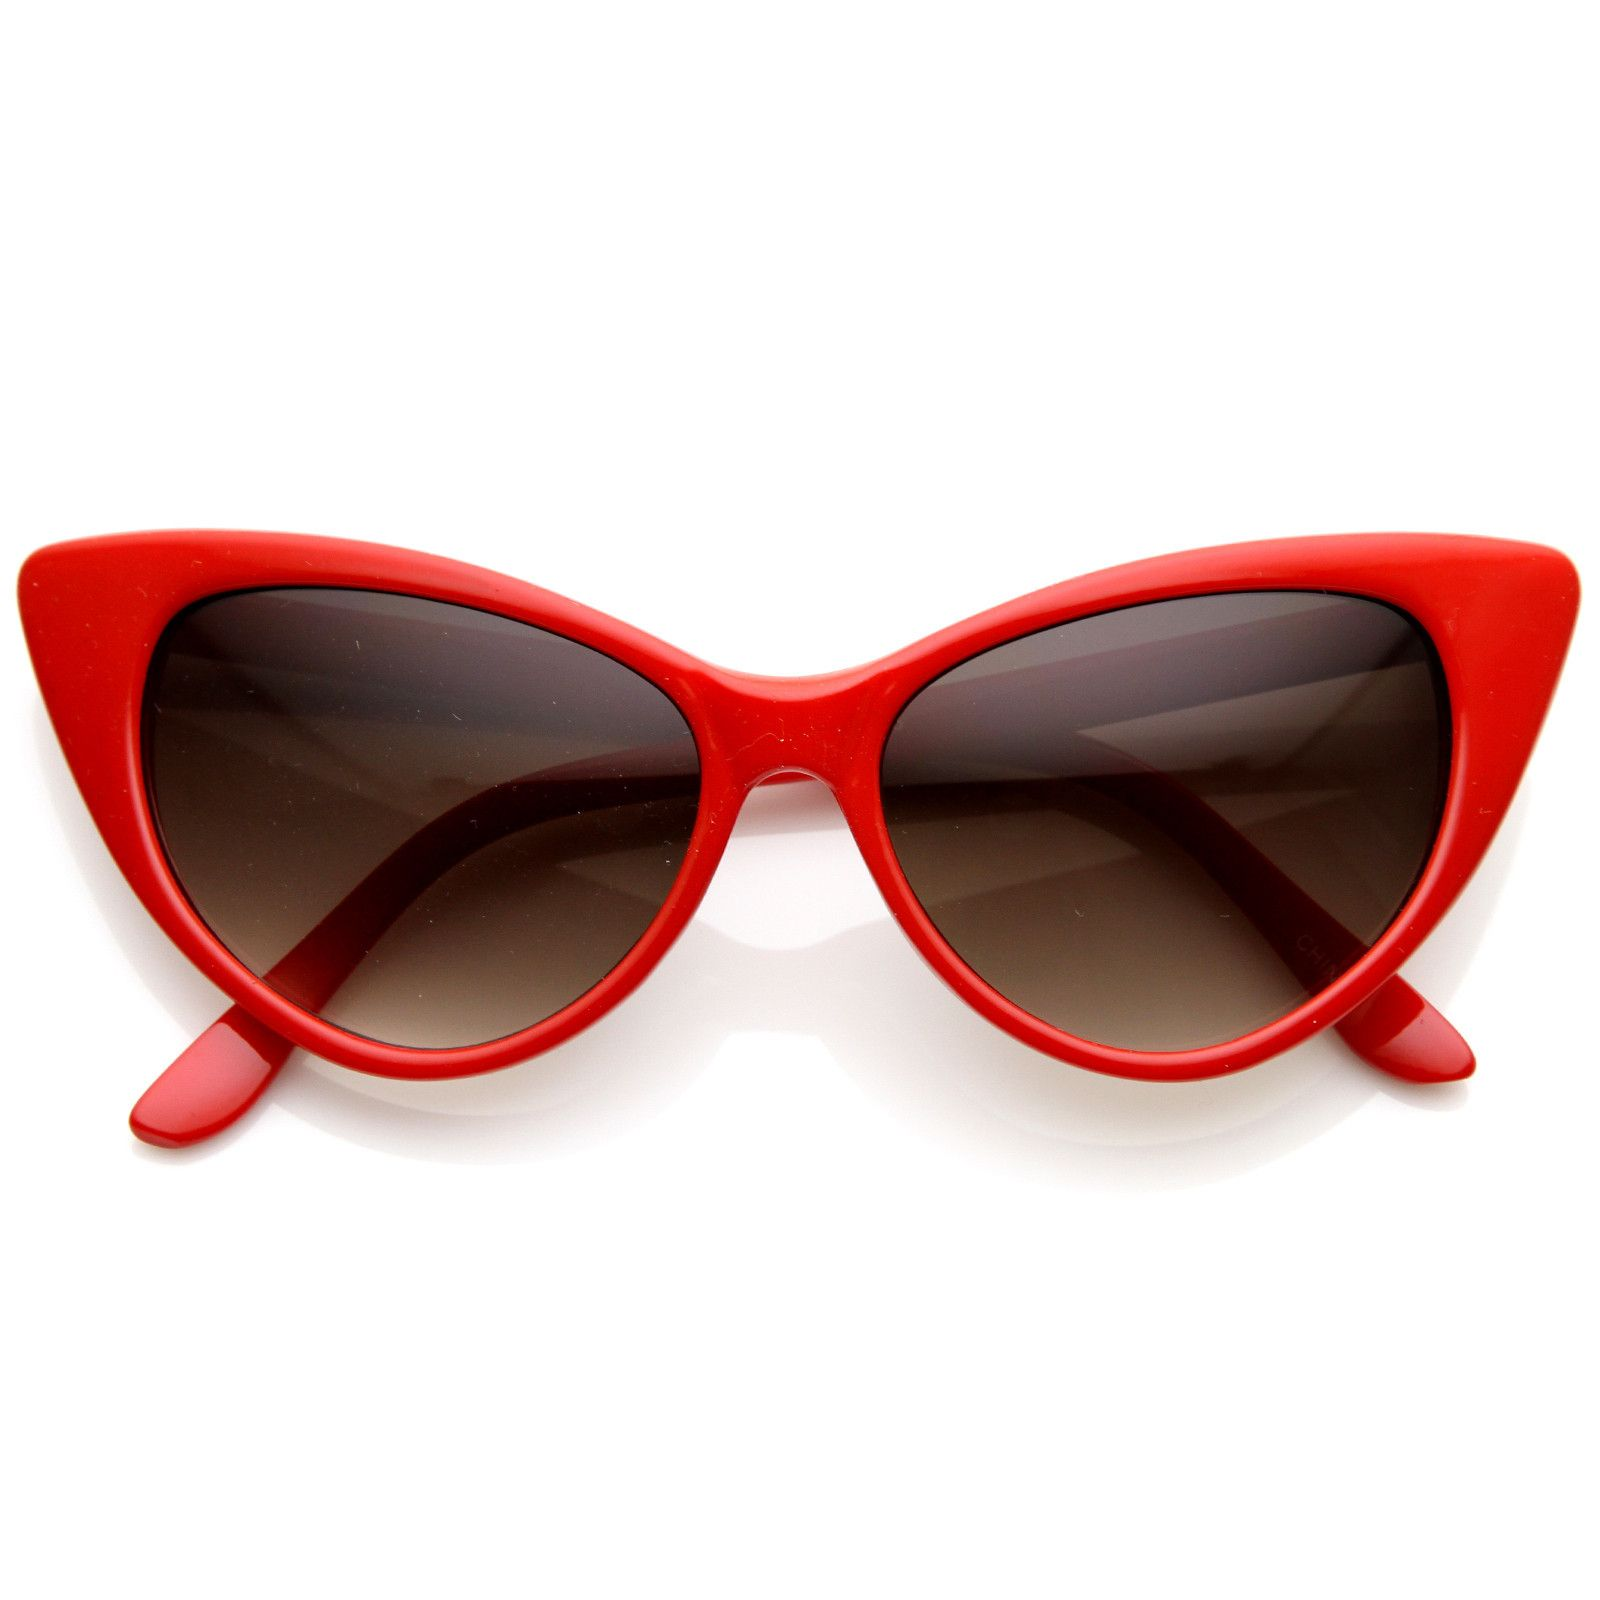 ec985b20e Womens Fashion Hot Tip Pointed Vintage Cat Eye Sunglasses 8371 in ...